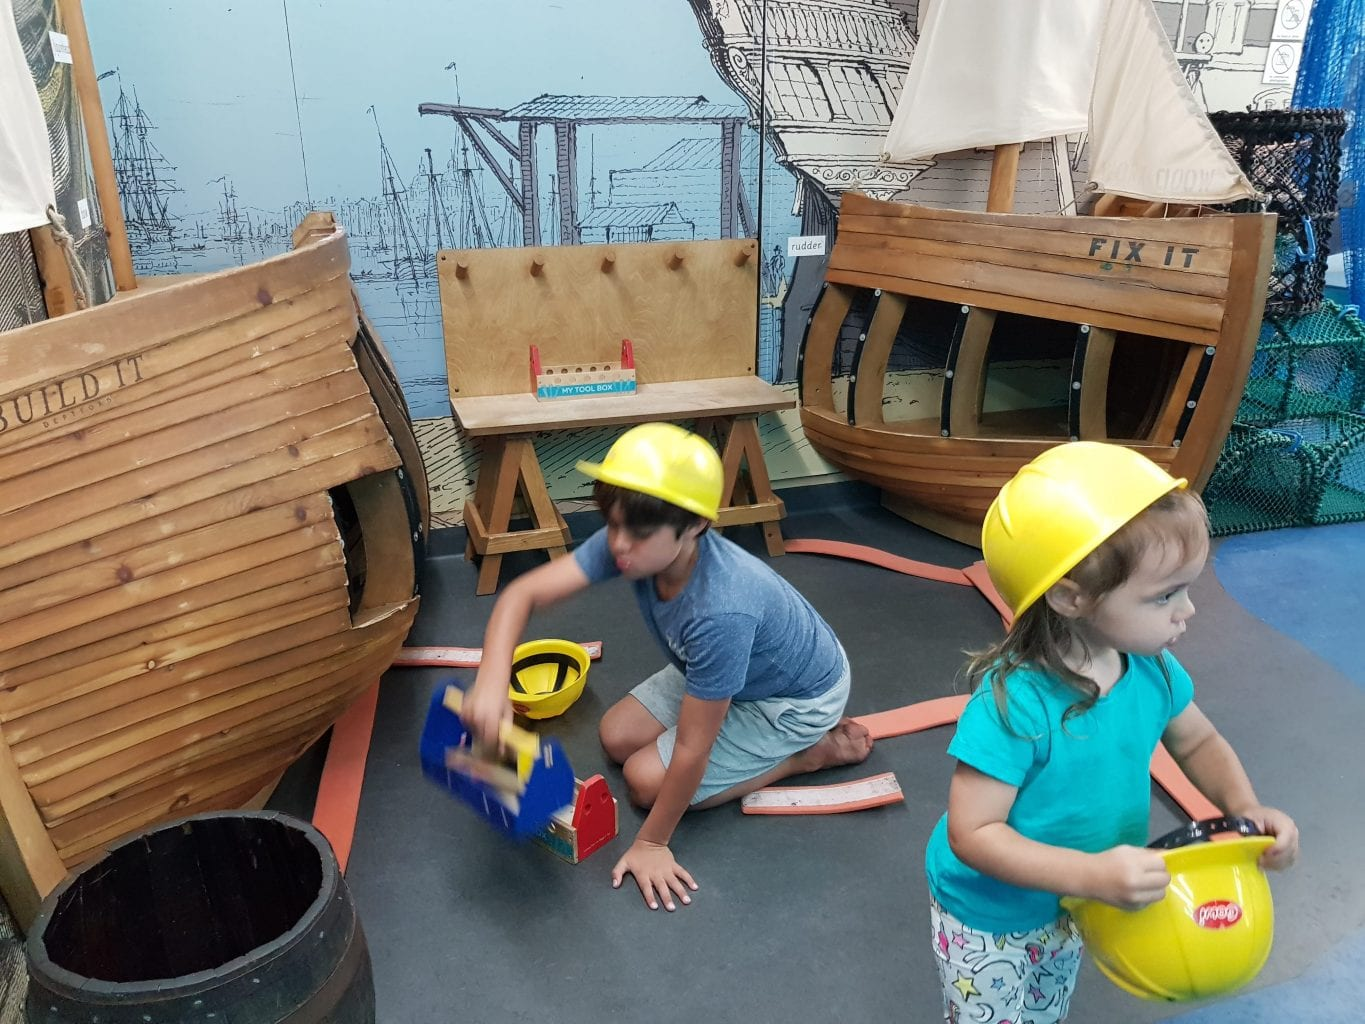 Kids play and have fun at the National Maritime Museum Greenwich